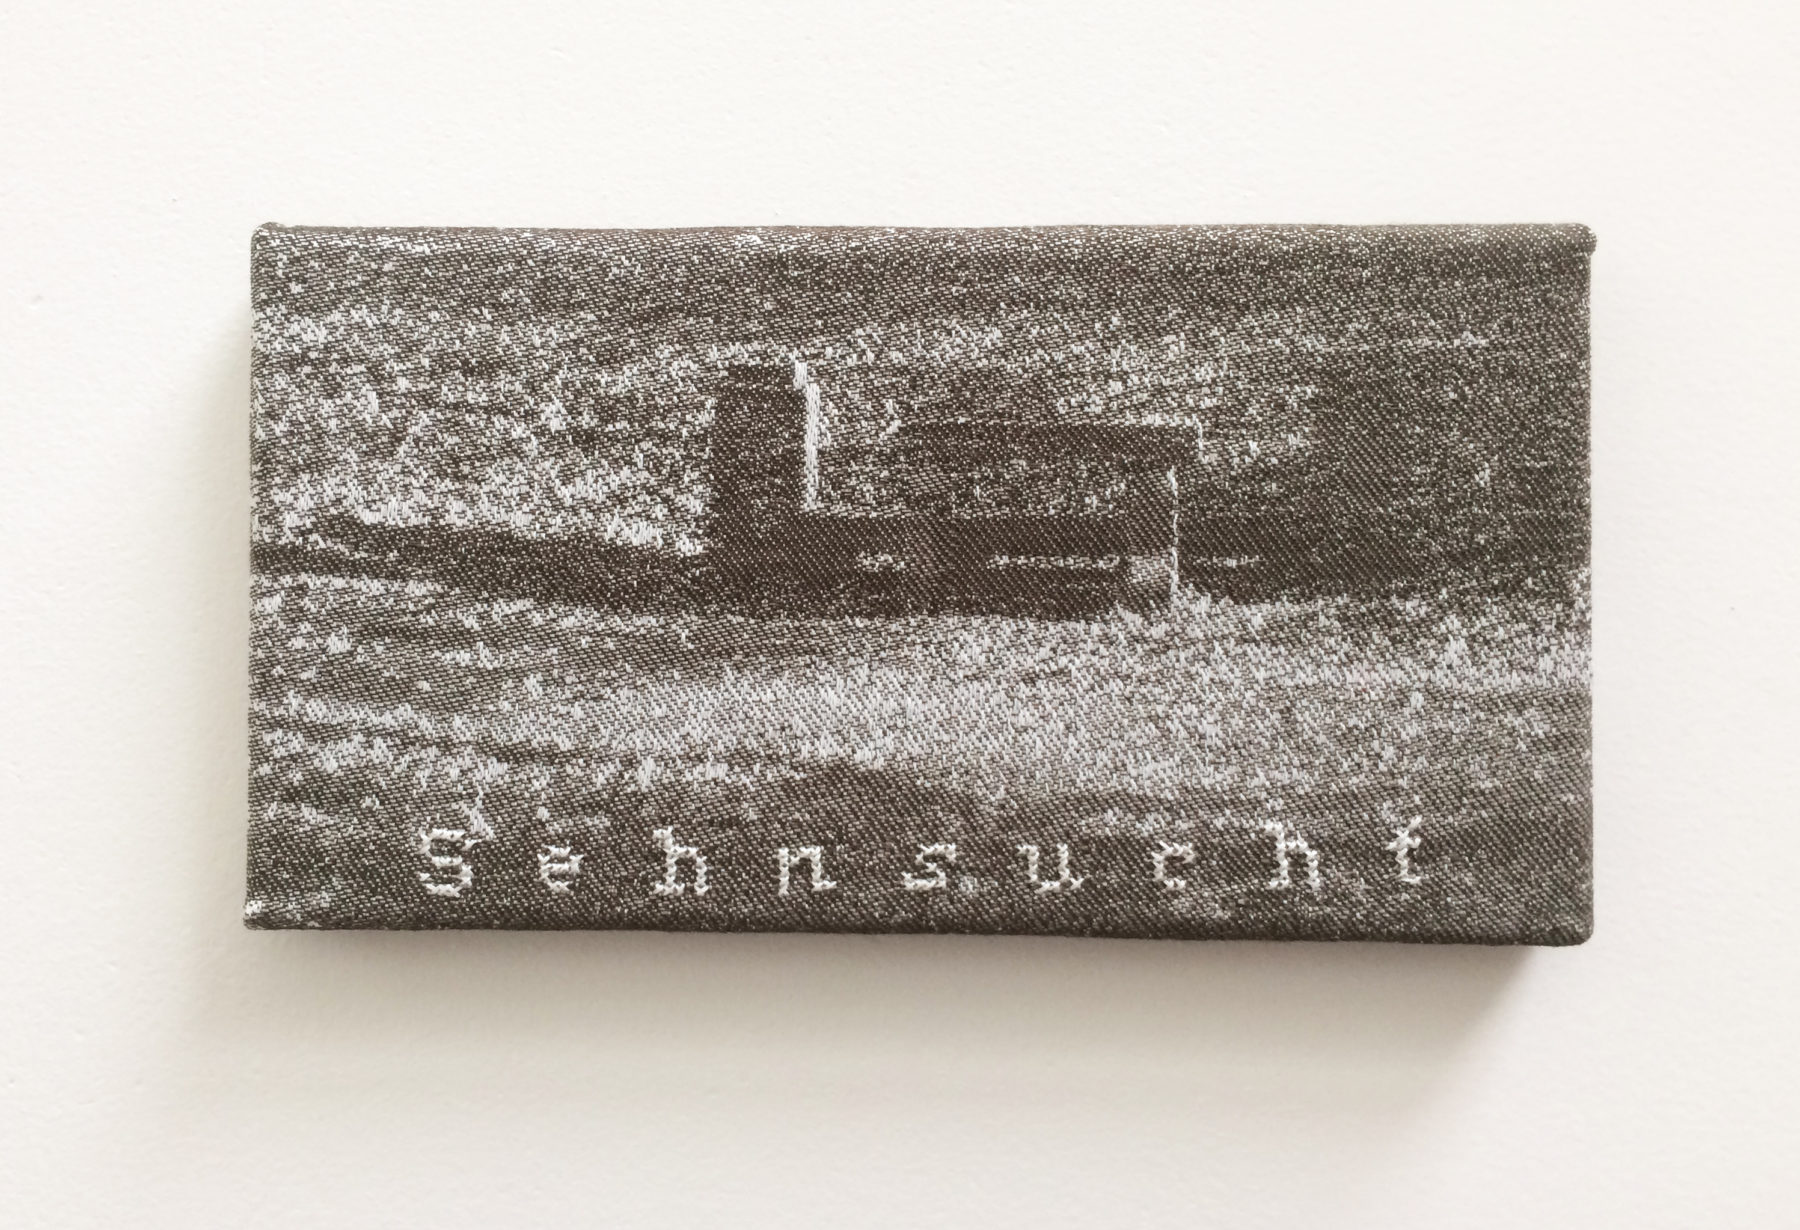 'Sehnsucht' - (Goethe)- Jacquard woven - single weaves - cotton -text embroideredby hand - 13 x 20 cm - 2015